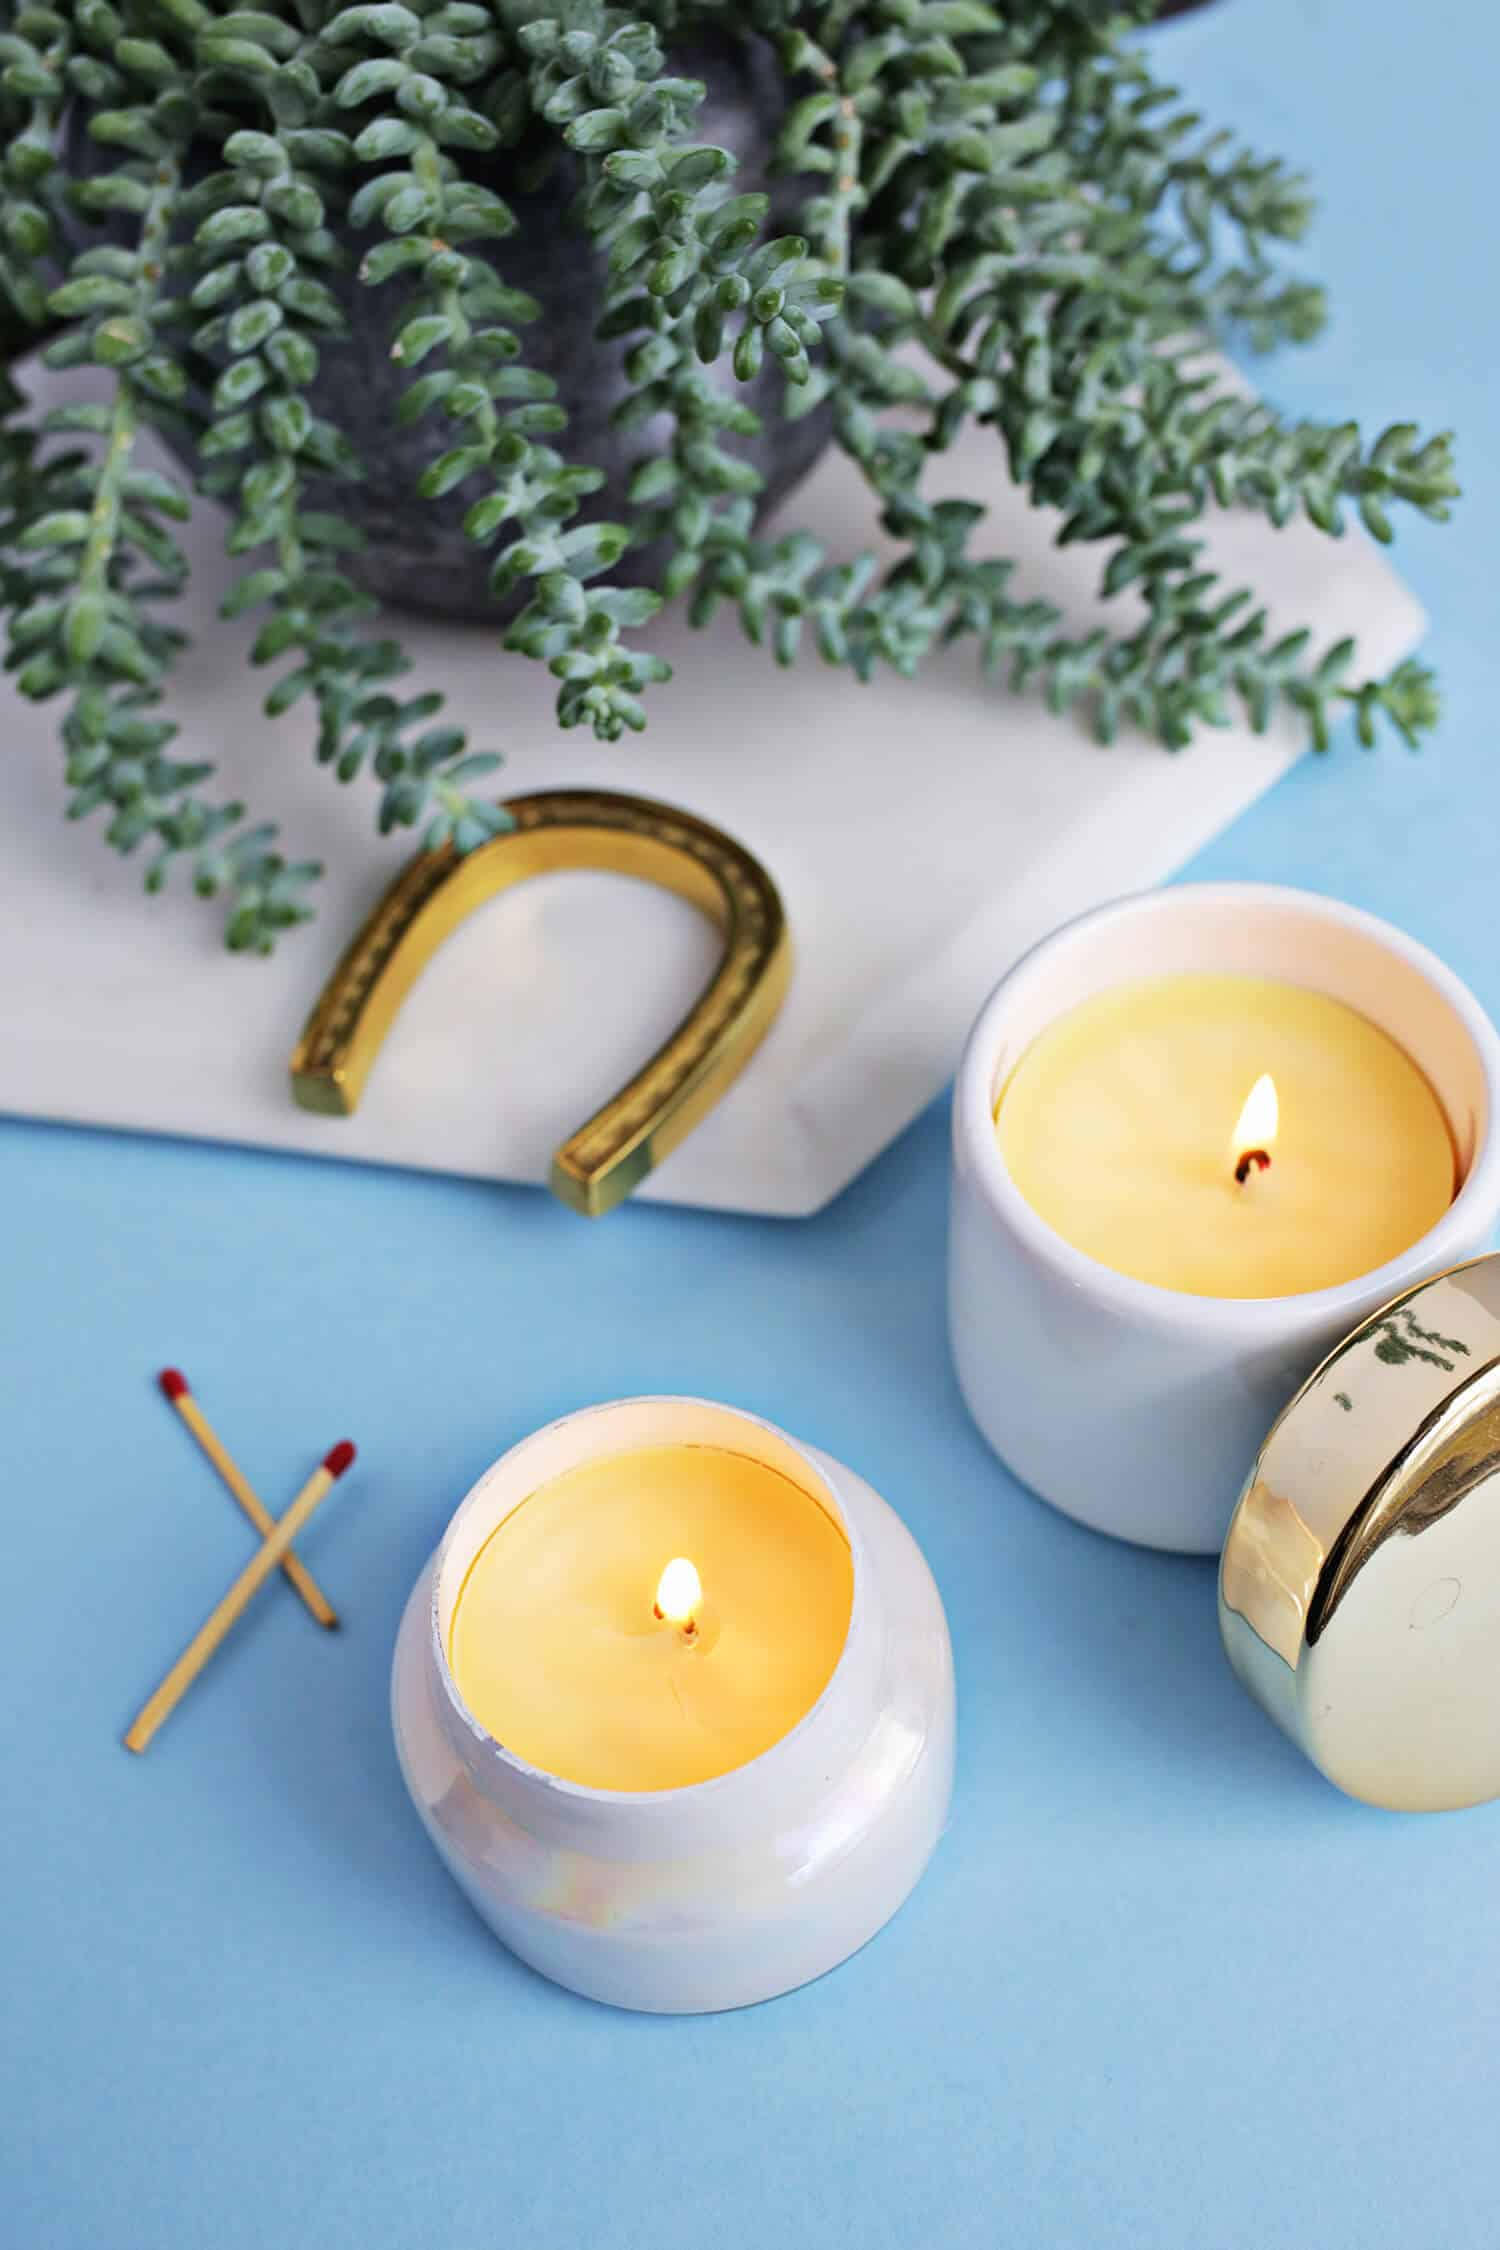 Make Your Own Beeswax Candles! - A Beautiful Mess